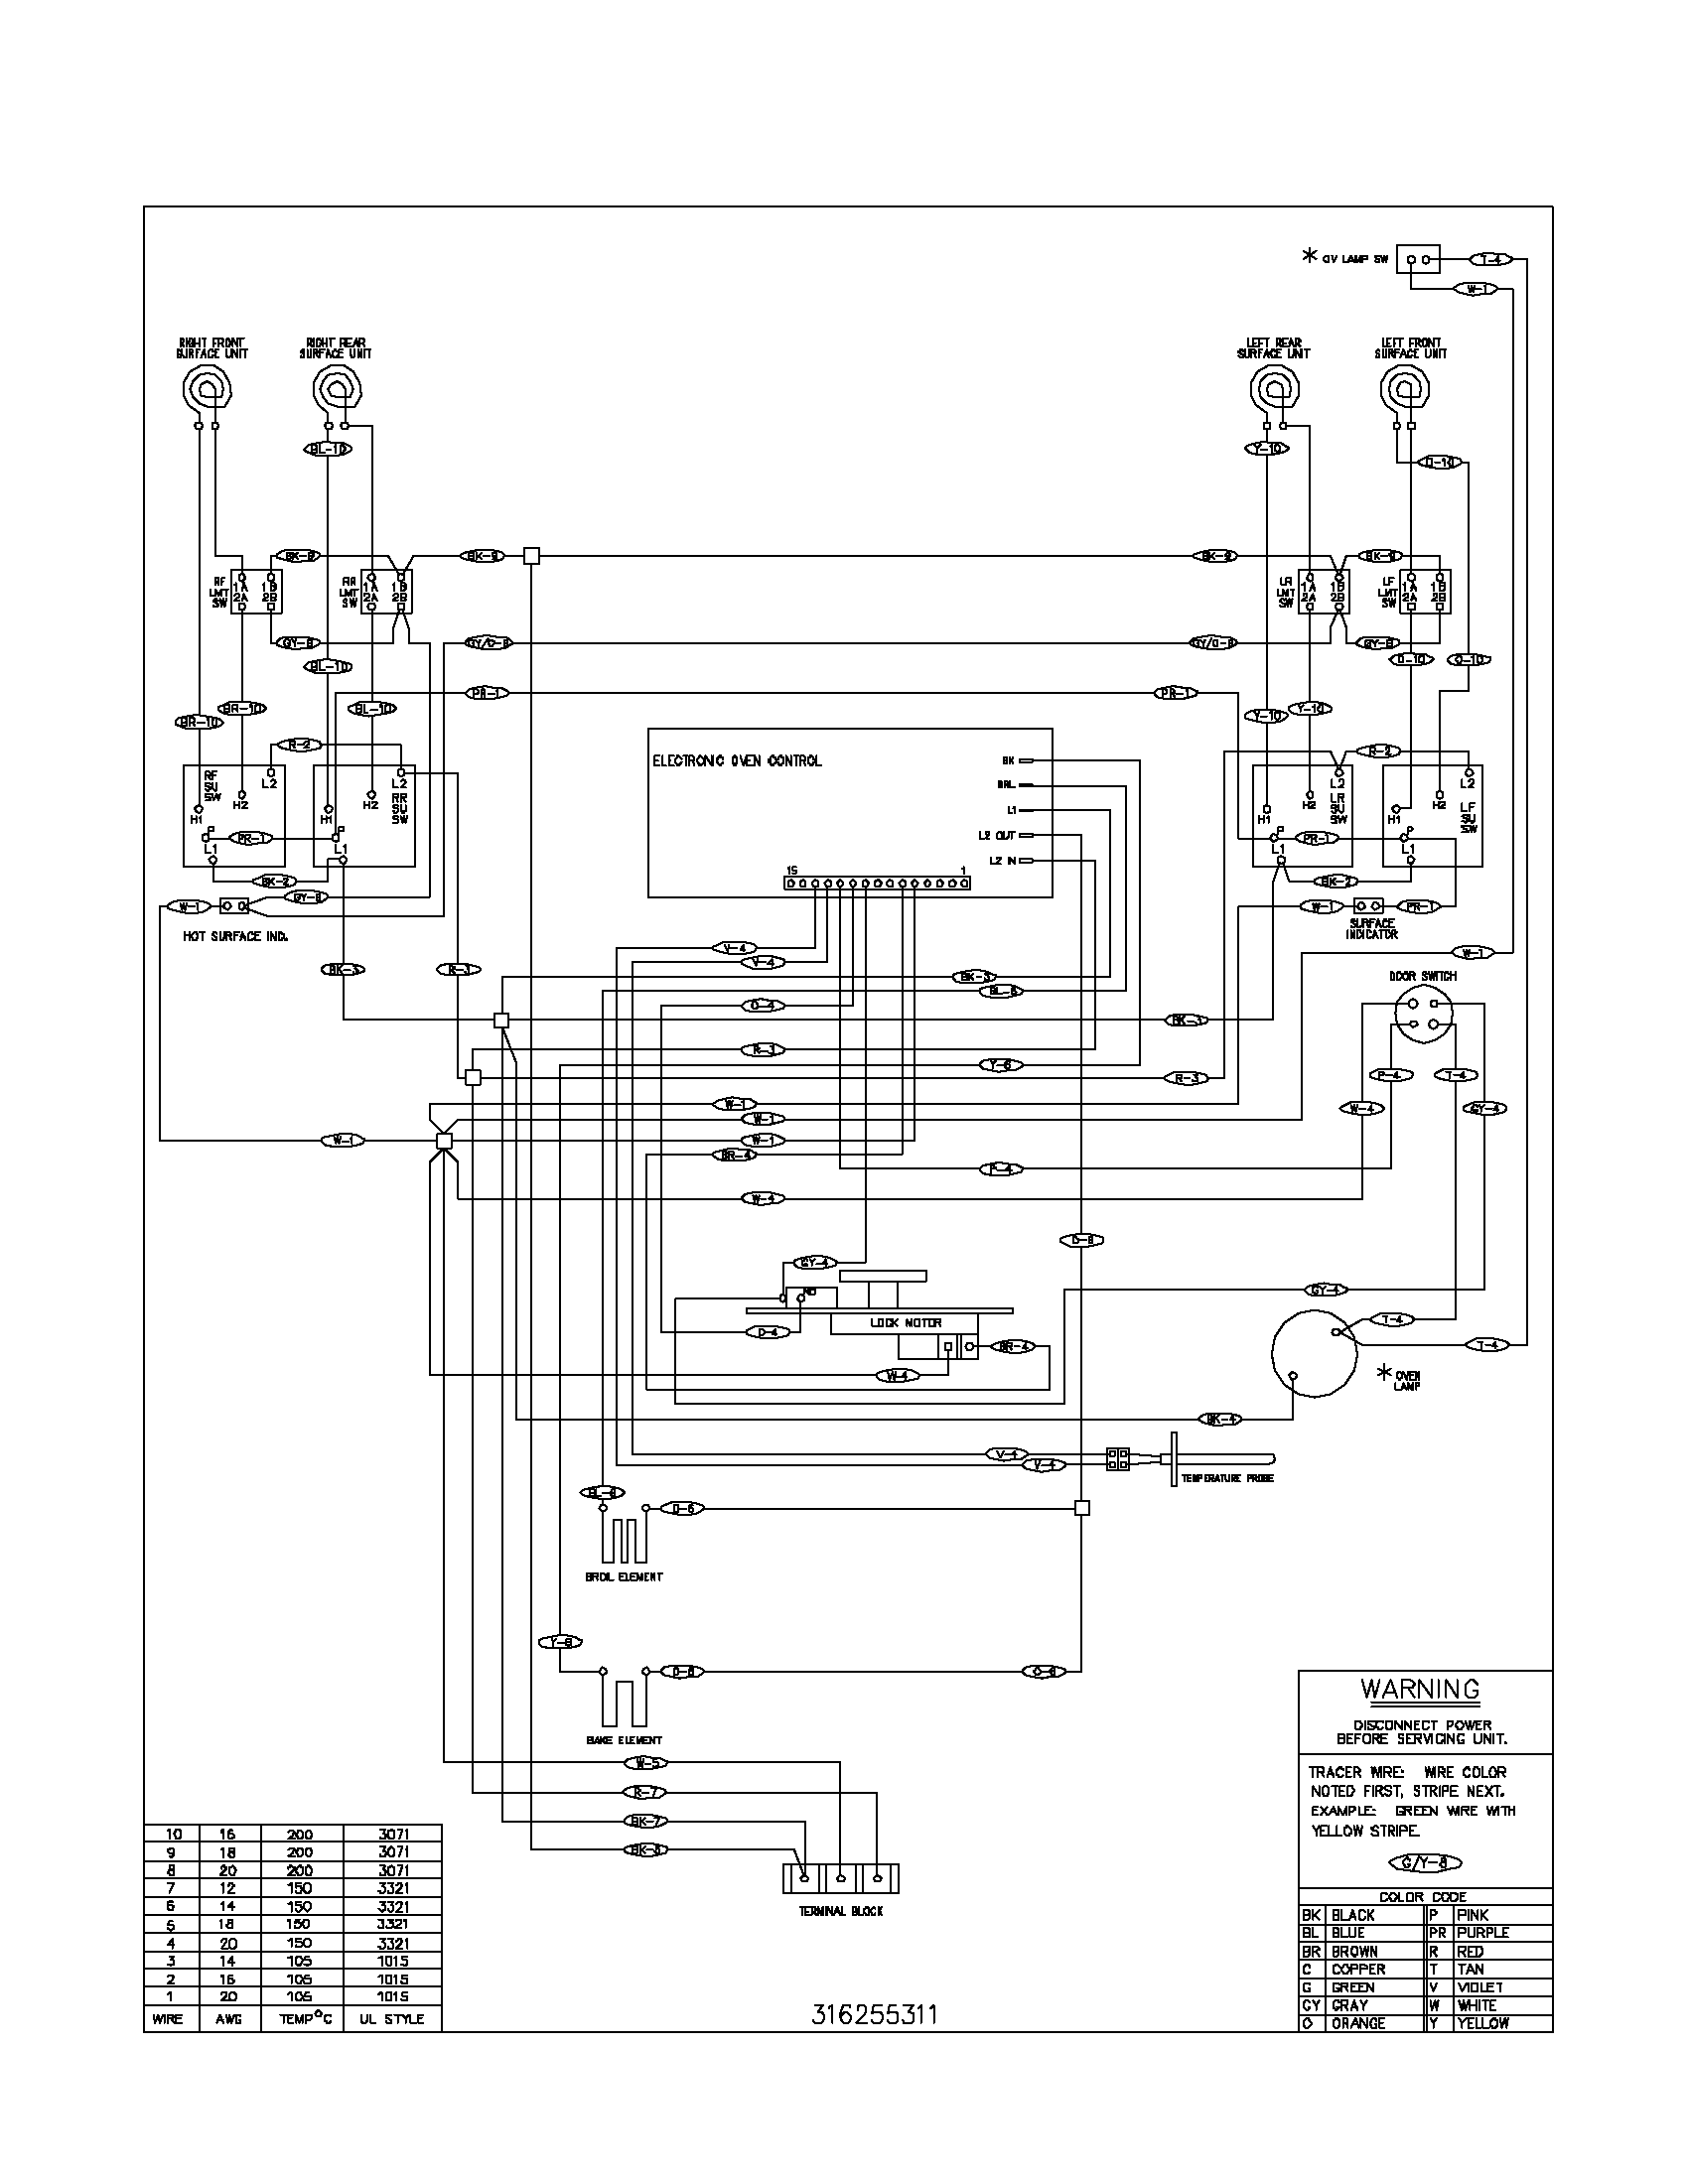 for diagram range wiring whirlpool gs445lems4 diagram range wiring whirlpool sf362lxsy0